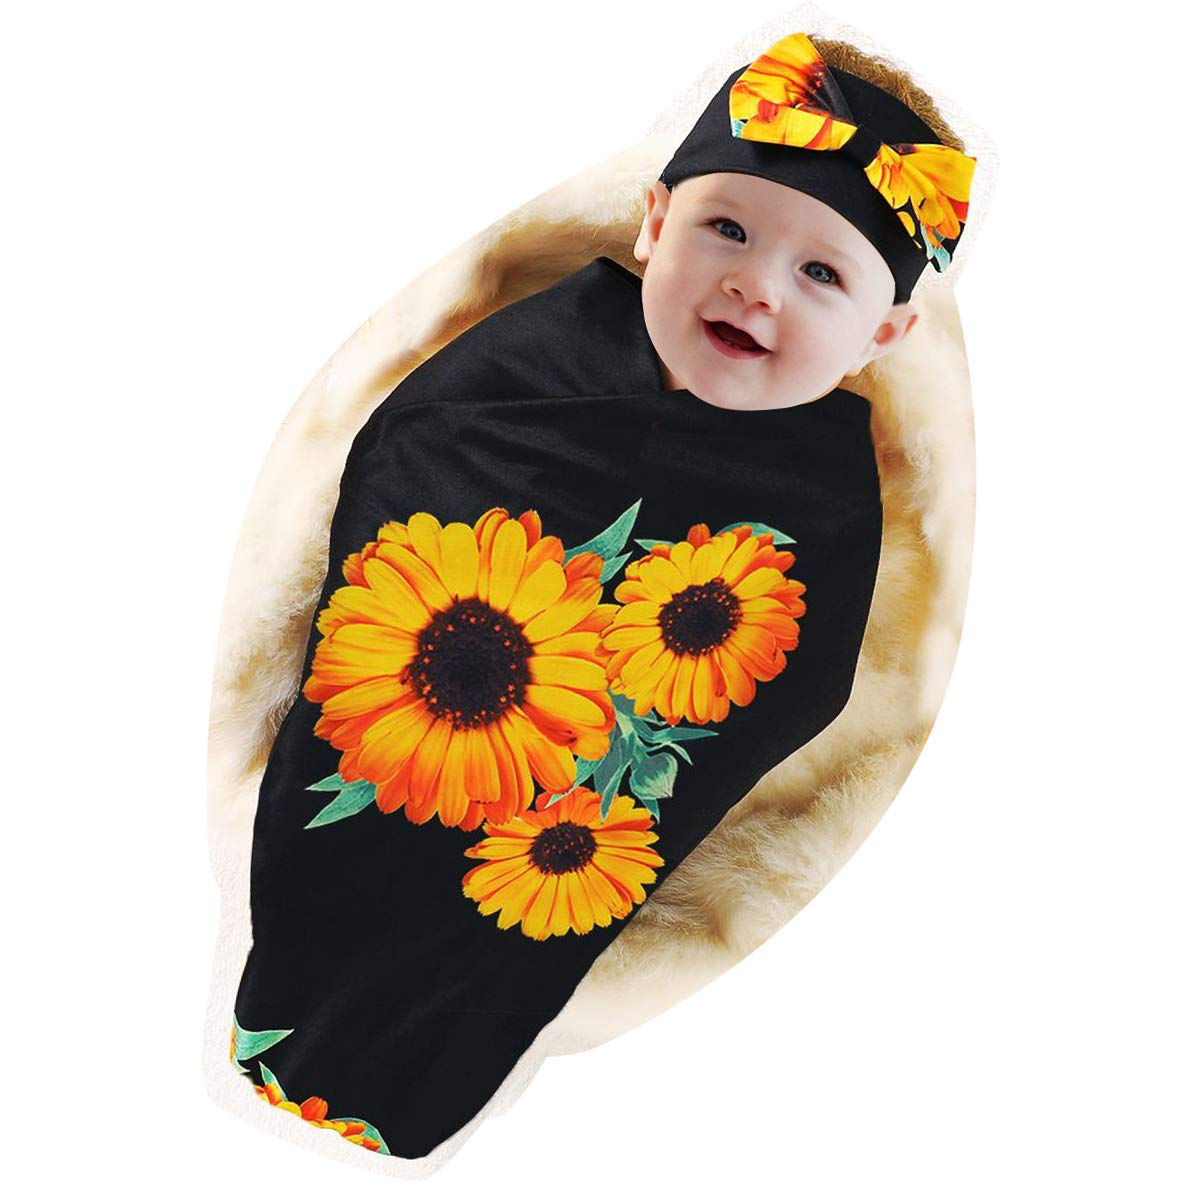 DaMohony Newborn Baby Blanket Headband Set, Toddler Sunflower Floral Swaddle Blanket with Headband Baby Sleeping Bag